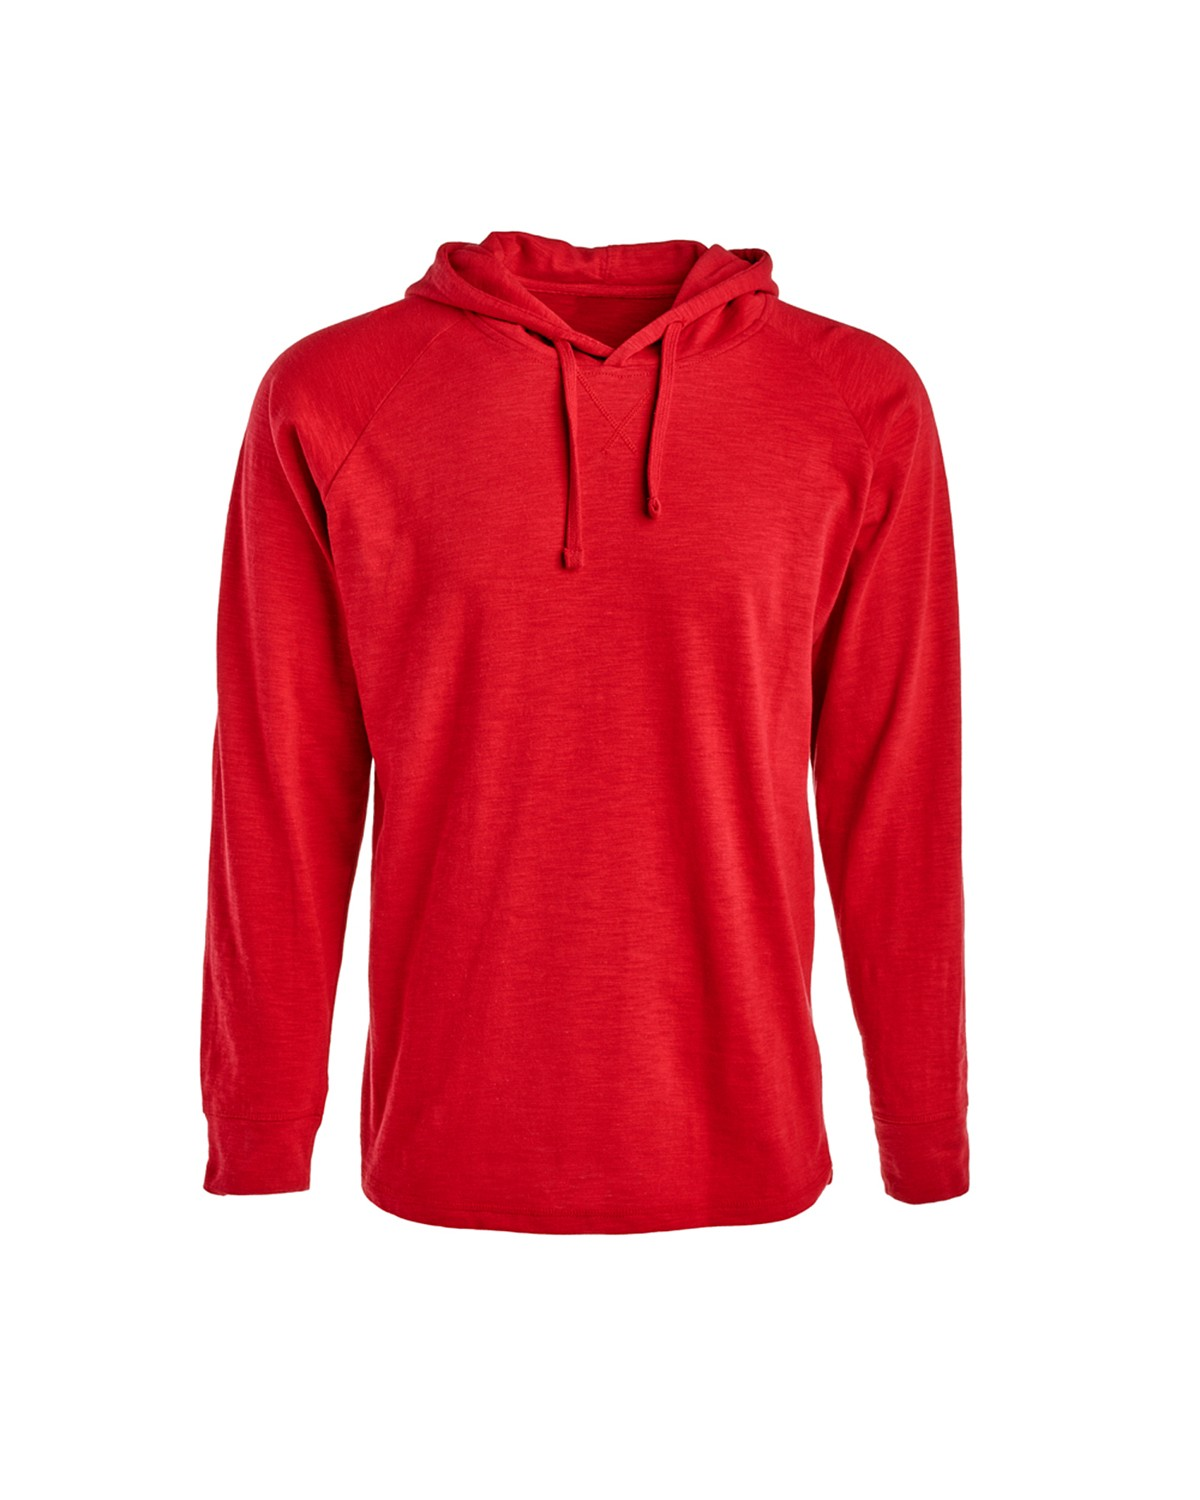 J America JA8245 Men's Vintage Slub Knit Pullover Hooded Sweatshirt - Simply Red - S from J America